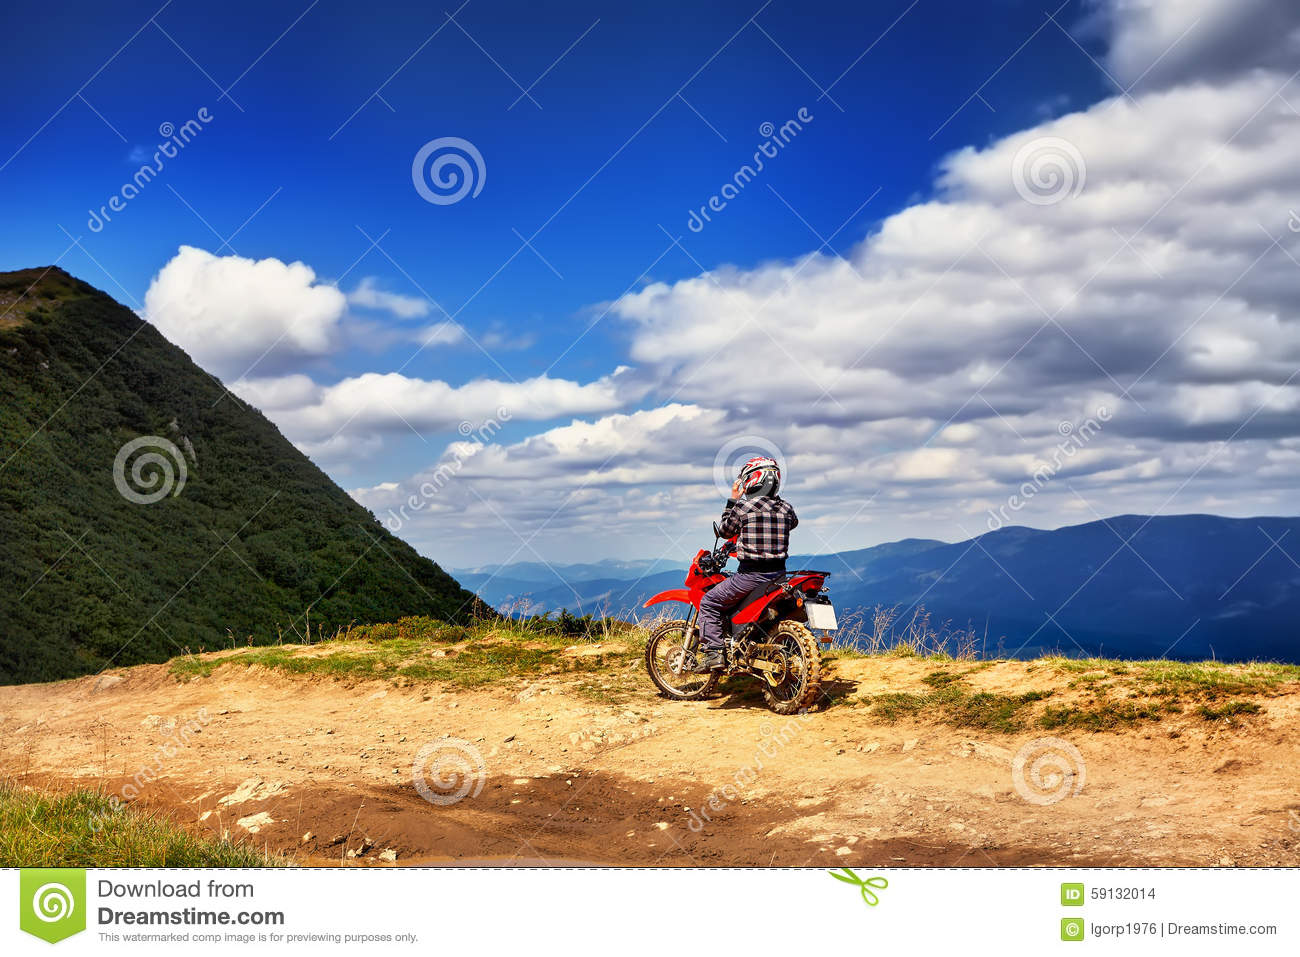 moto racers riding on mountainous road drive a motorcycle stock photo image 59132014. Black Bedroom Furniture Sets. Home Design Ideas